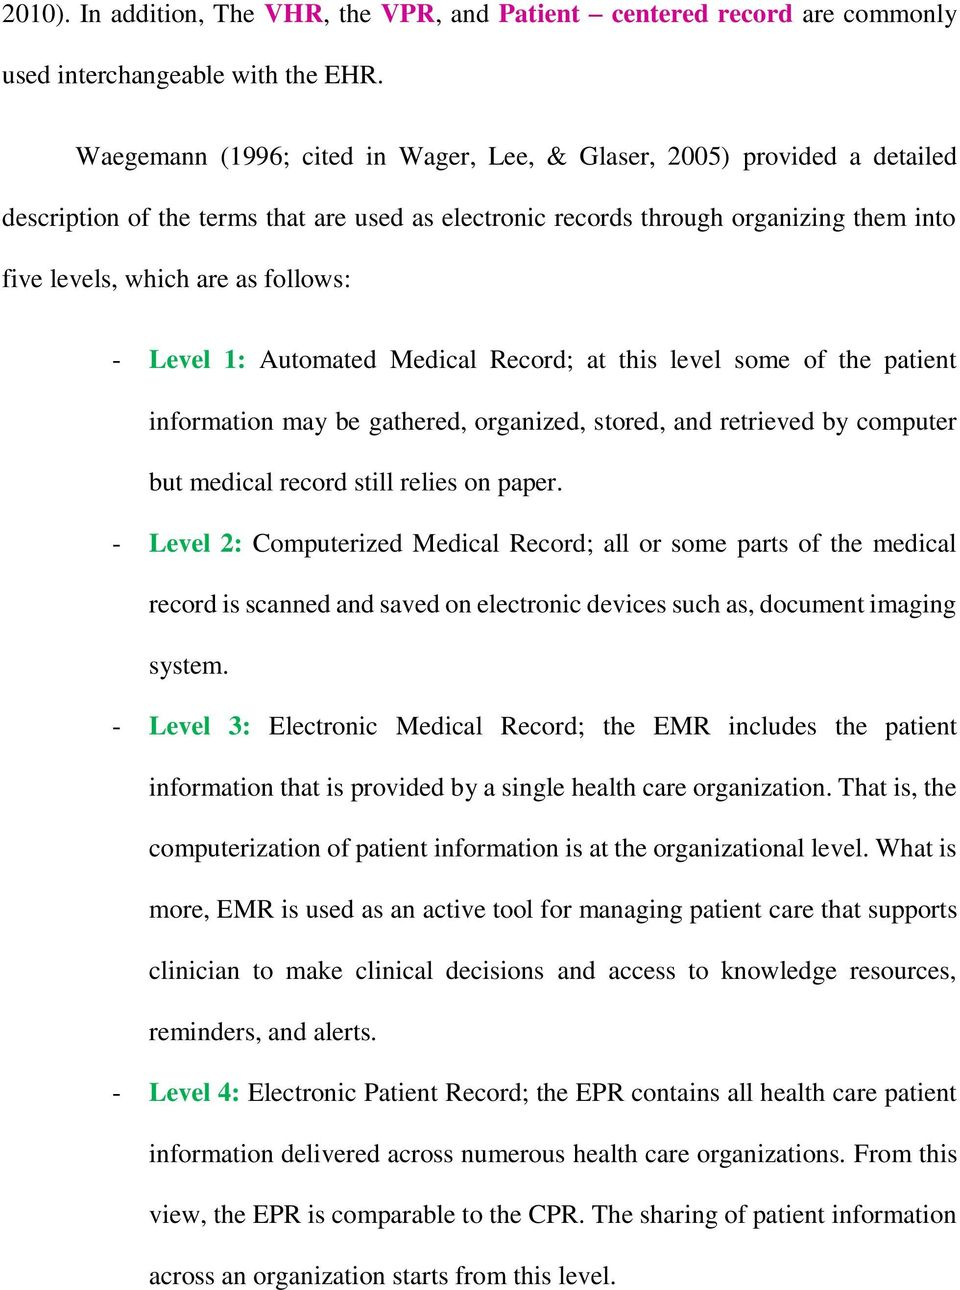 - Level 1: Automated Medical Record; at this level some of the patient information may be gathered, organized, stored, and retrieved by computer but medical record still relies on paper.